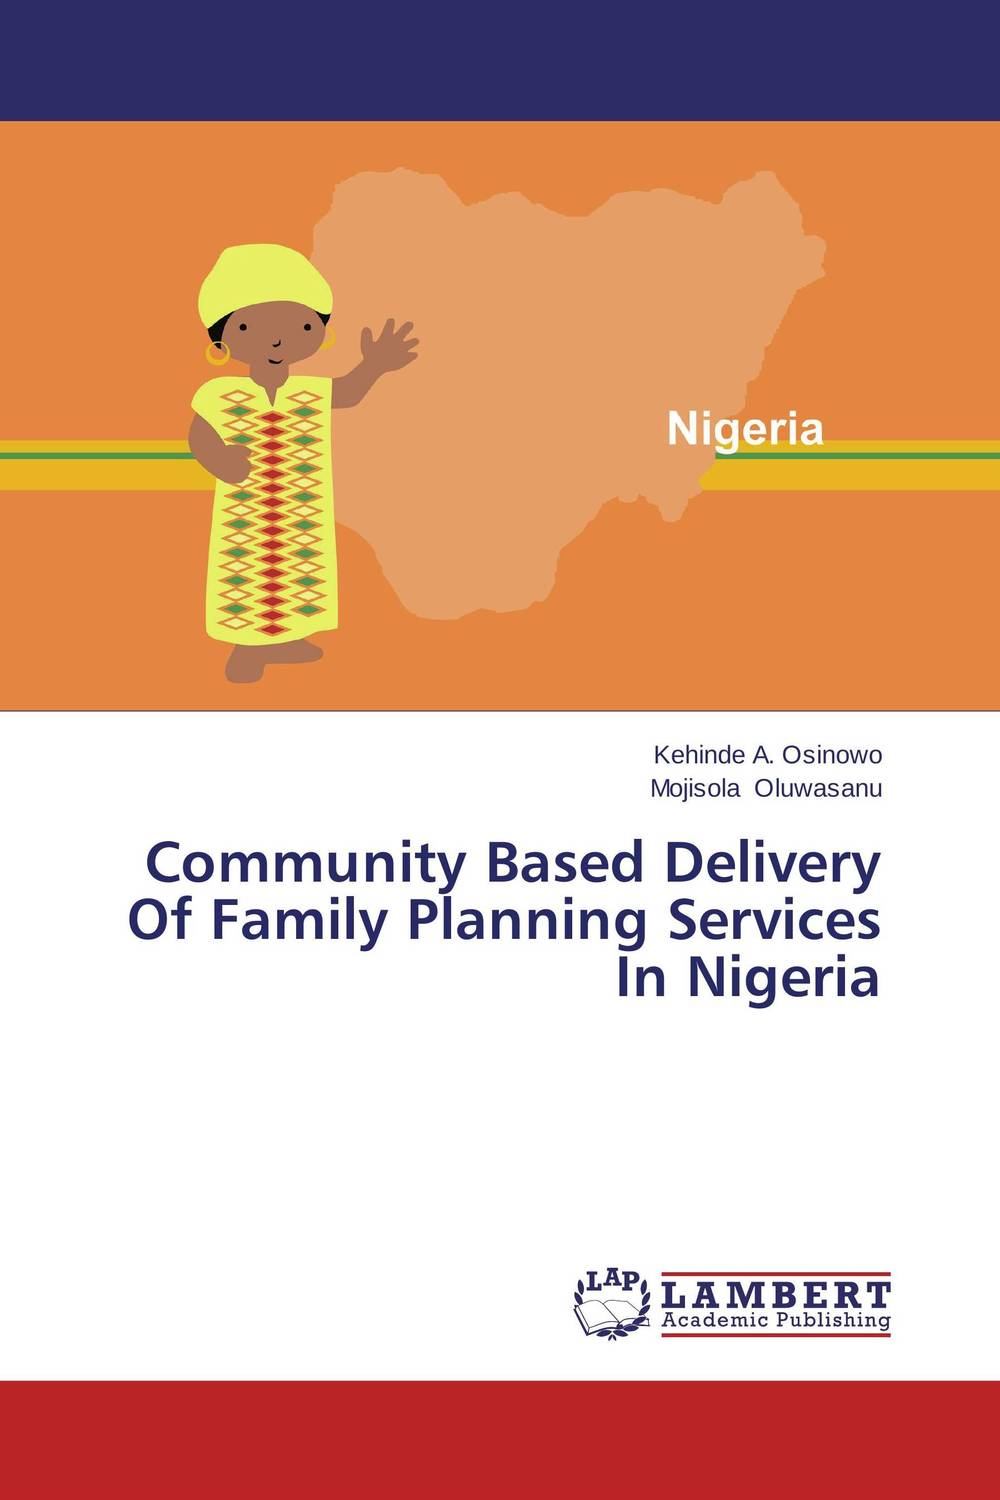 Community Based Delivery Of Family Planning Services In Nigeria twister family board game that ties you up in knots